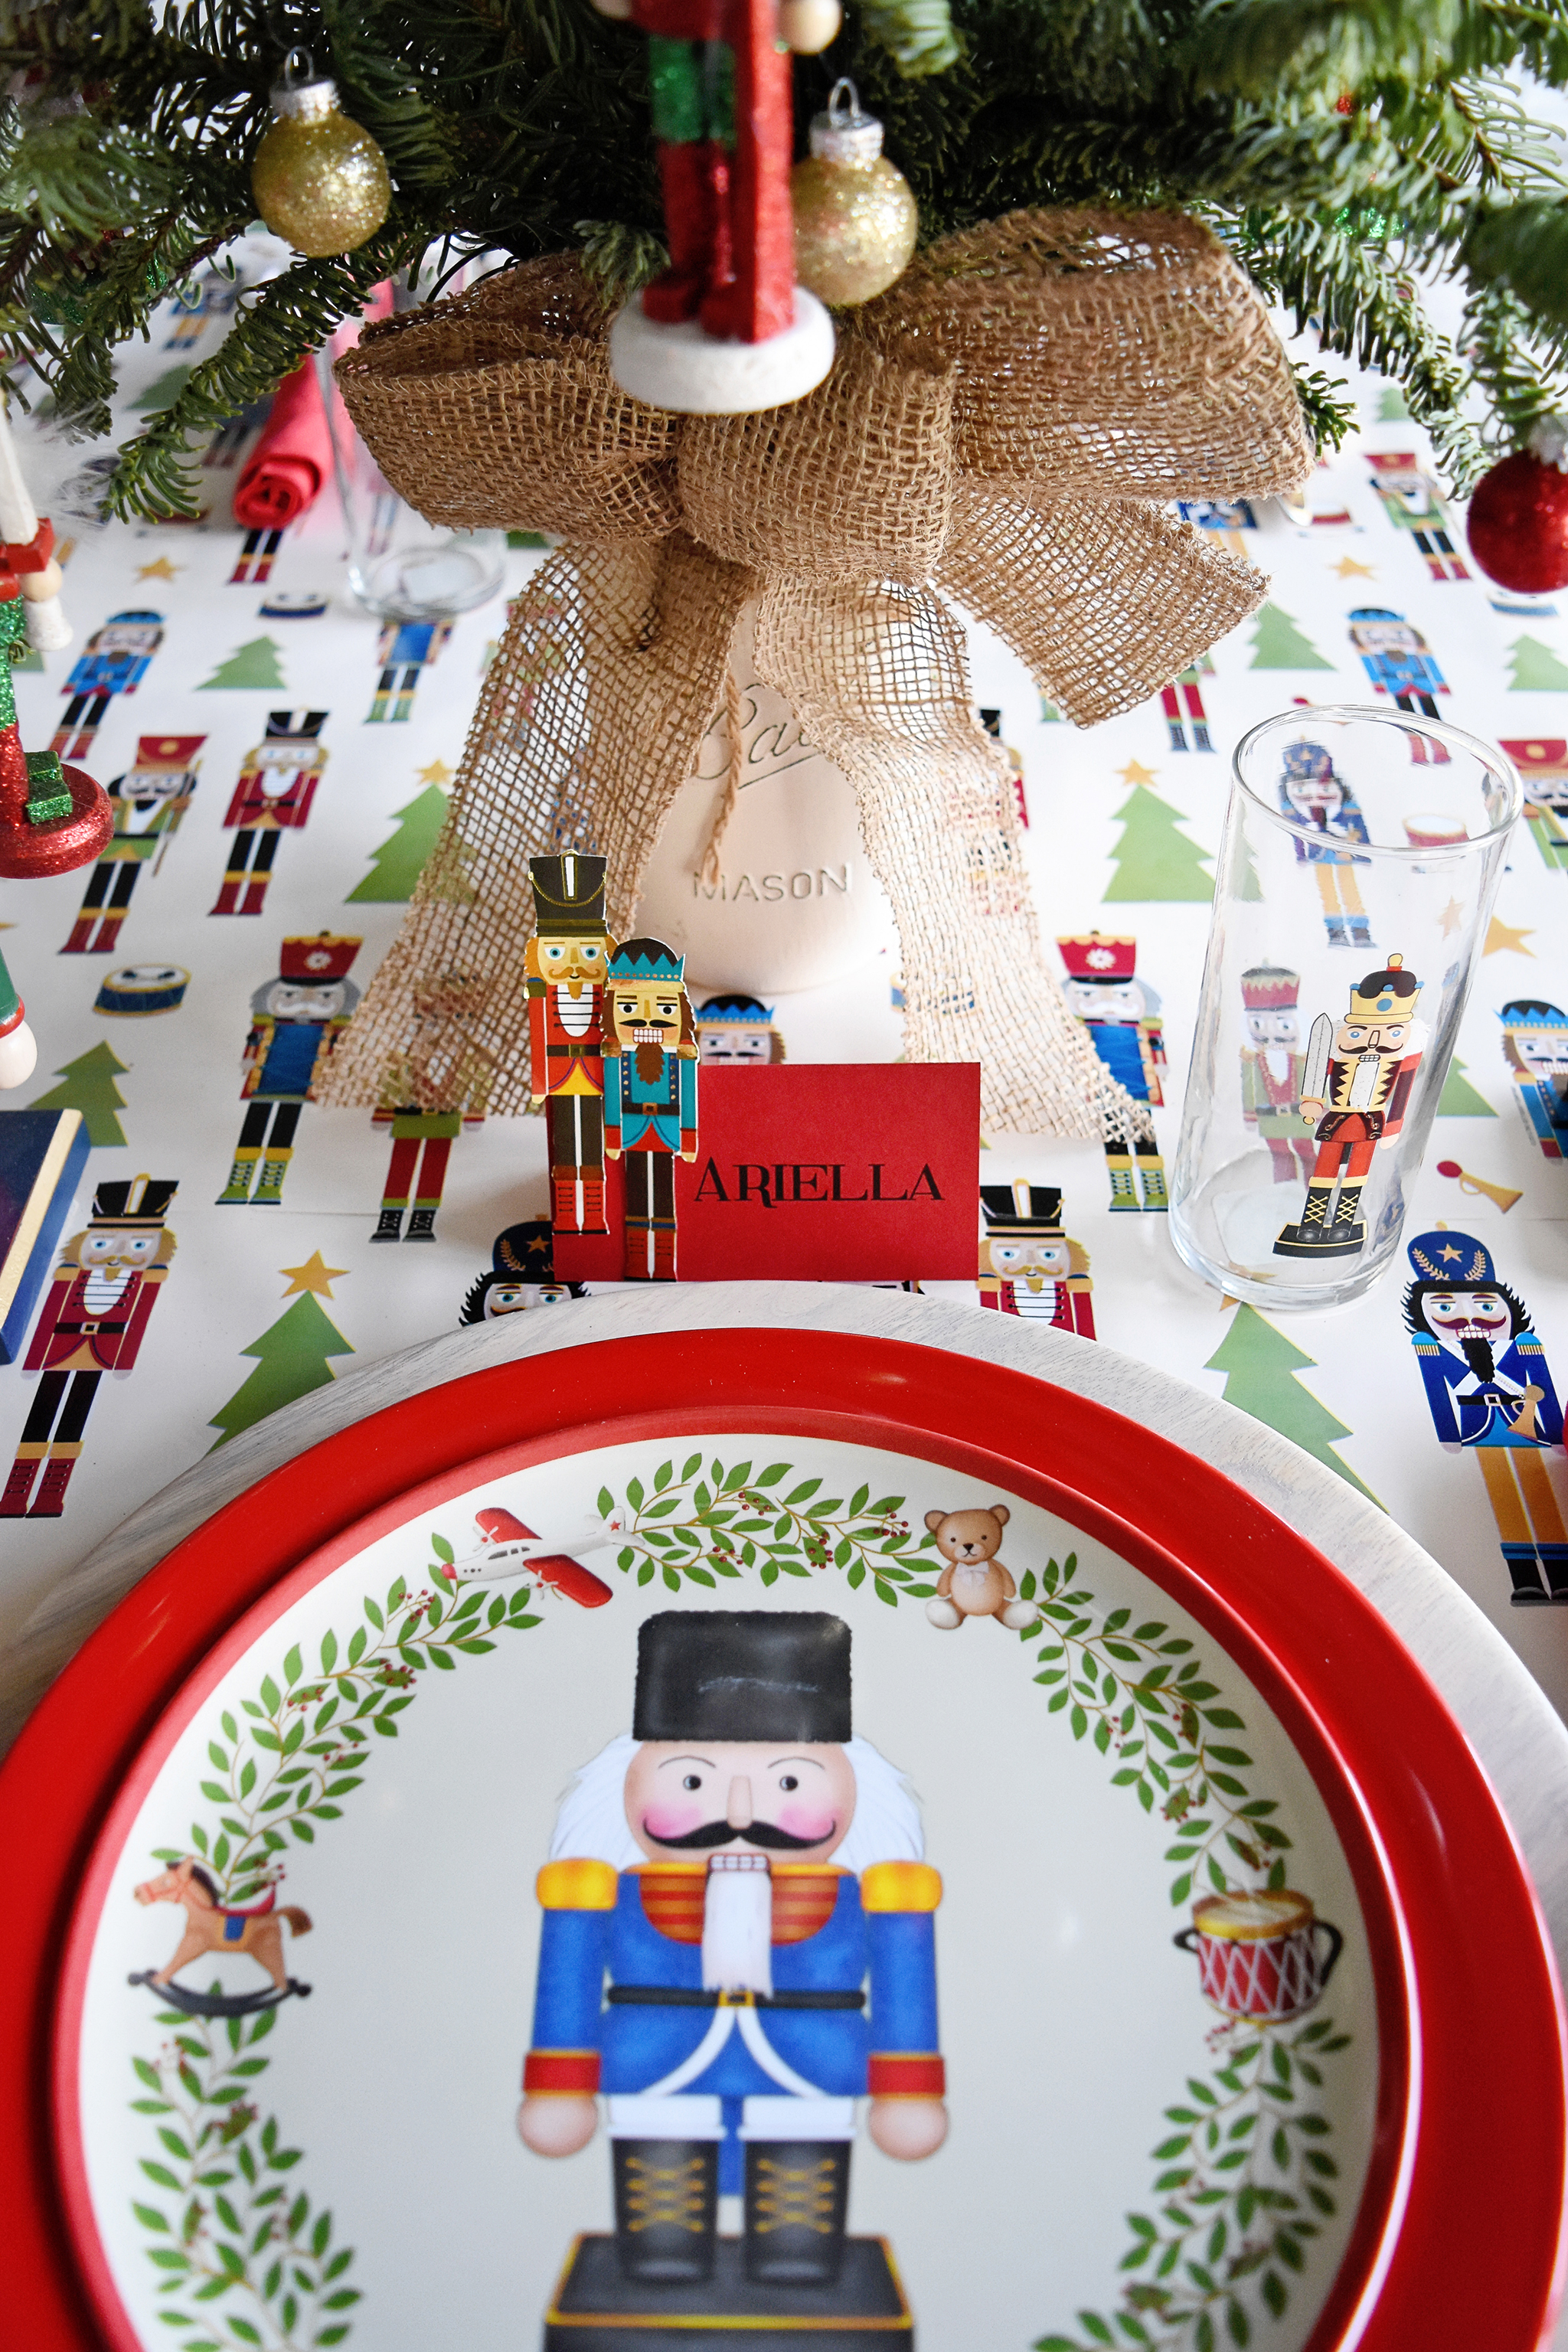 Set the table with some nutcracker plates!